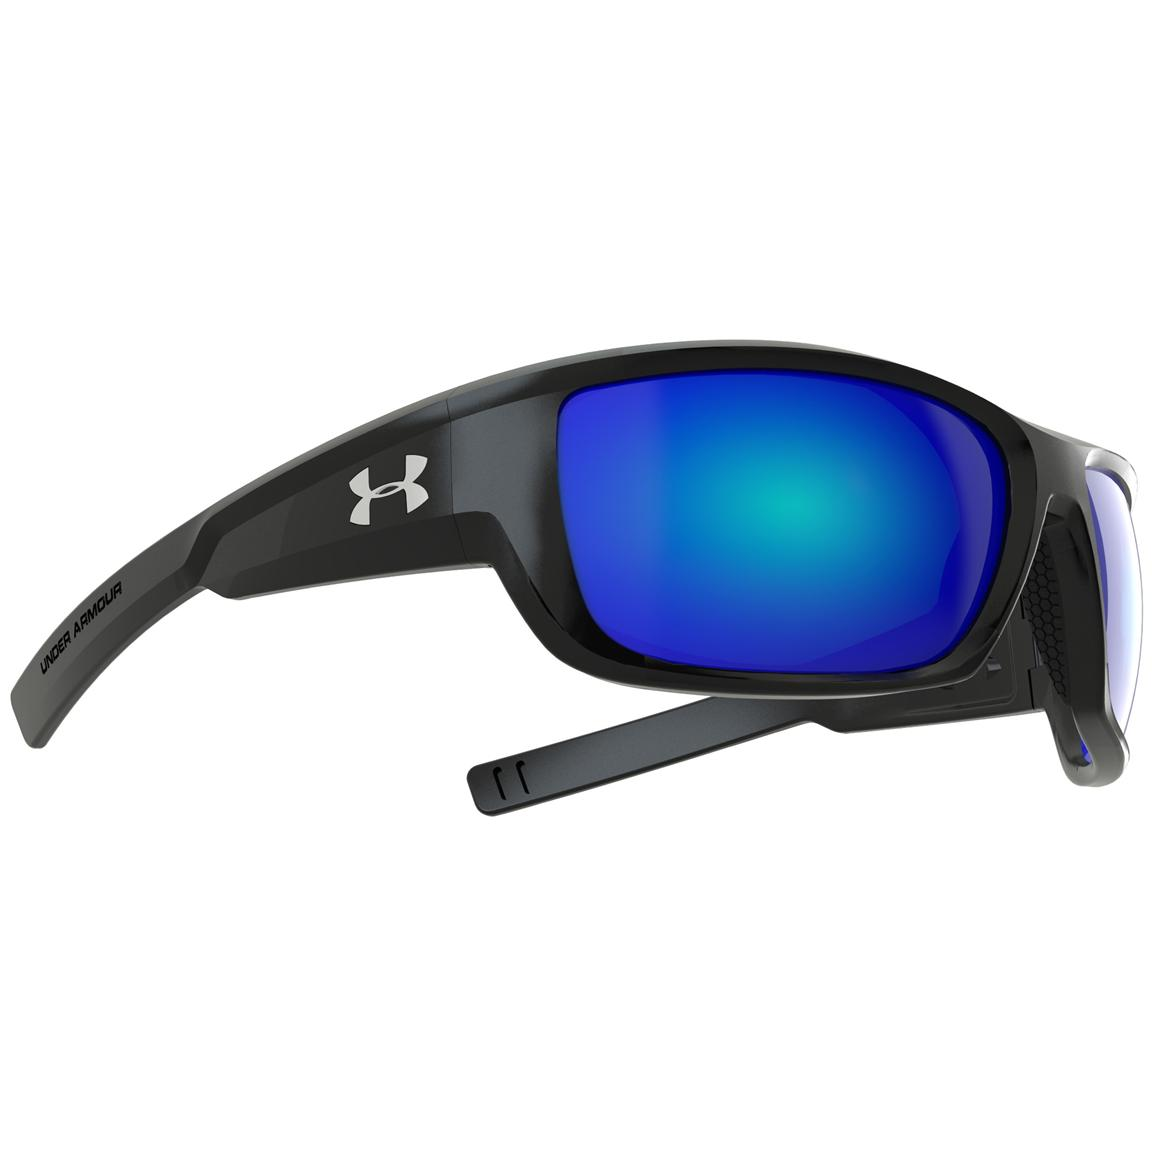 Under Armour® Rumble Polarized Sunglasses with Blue Mirror Multiflection™ Lenses